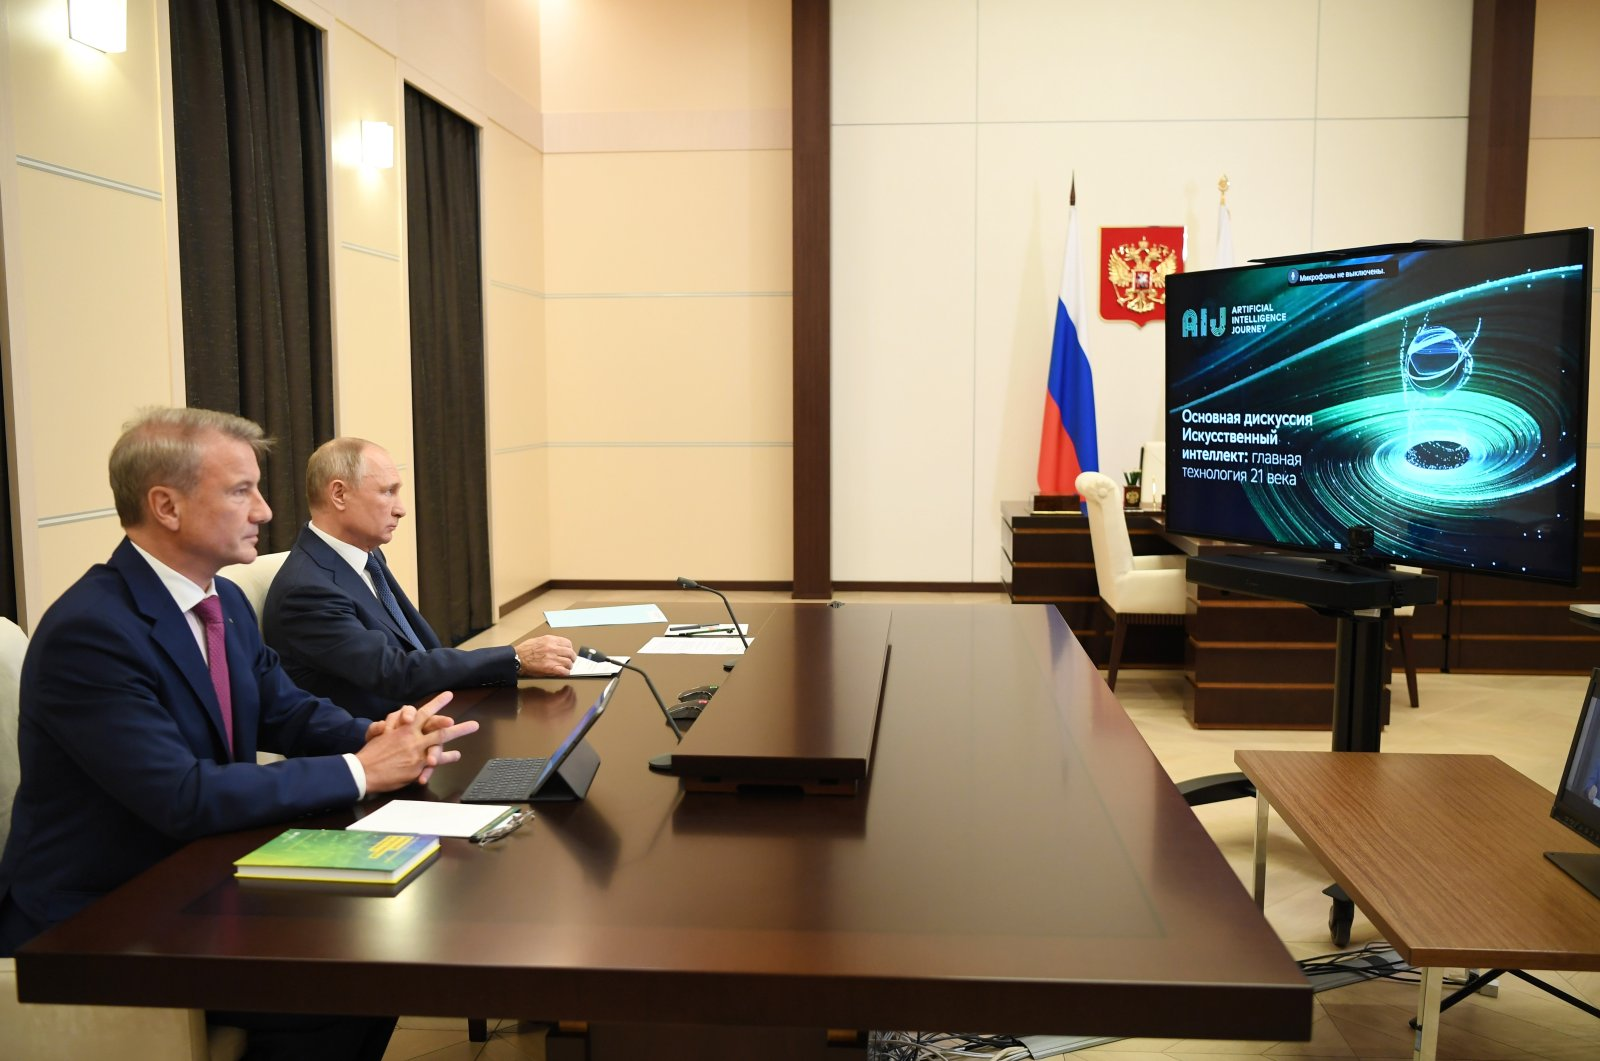 Russian President Vladimir Putin (R) and Sberbank CEO Herman Gref attend the online AI Journey conference, Moscow, Russia, Dec. 4, 2020. (Photo by Getty Images)